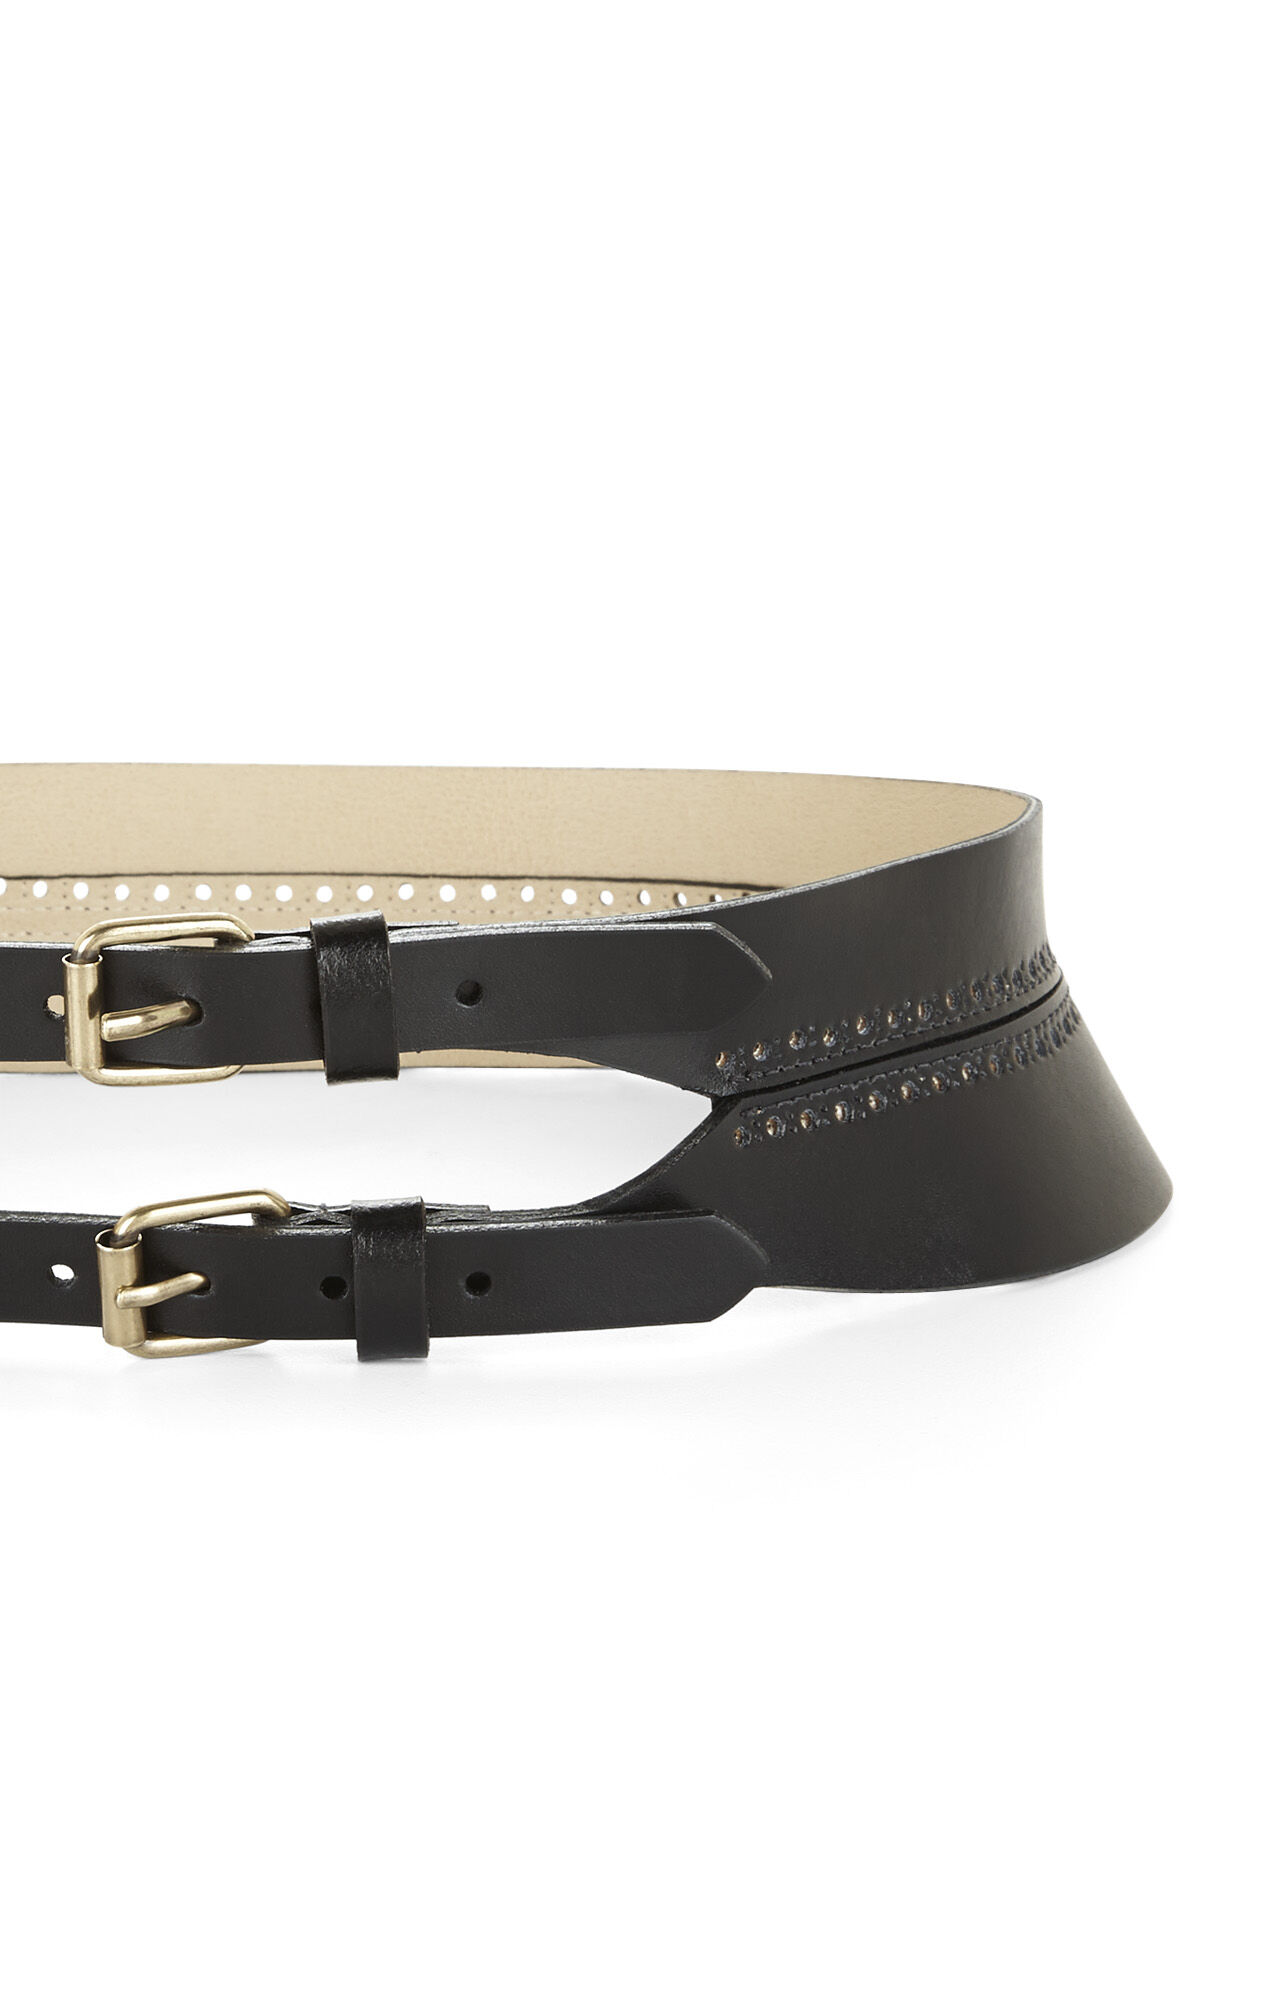 Double-Buckle Waist Belt